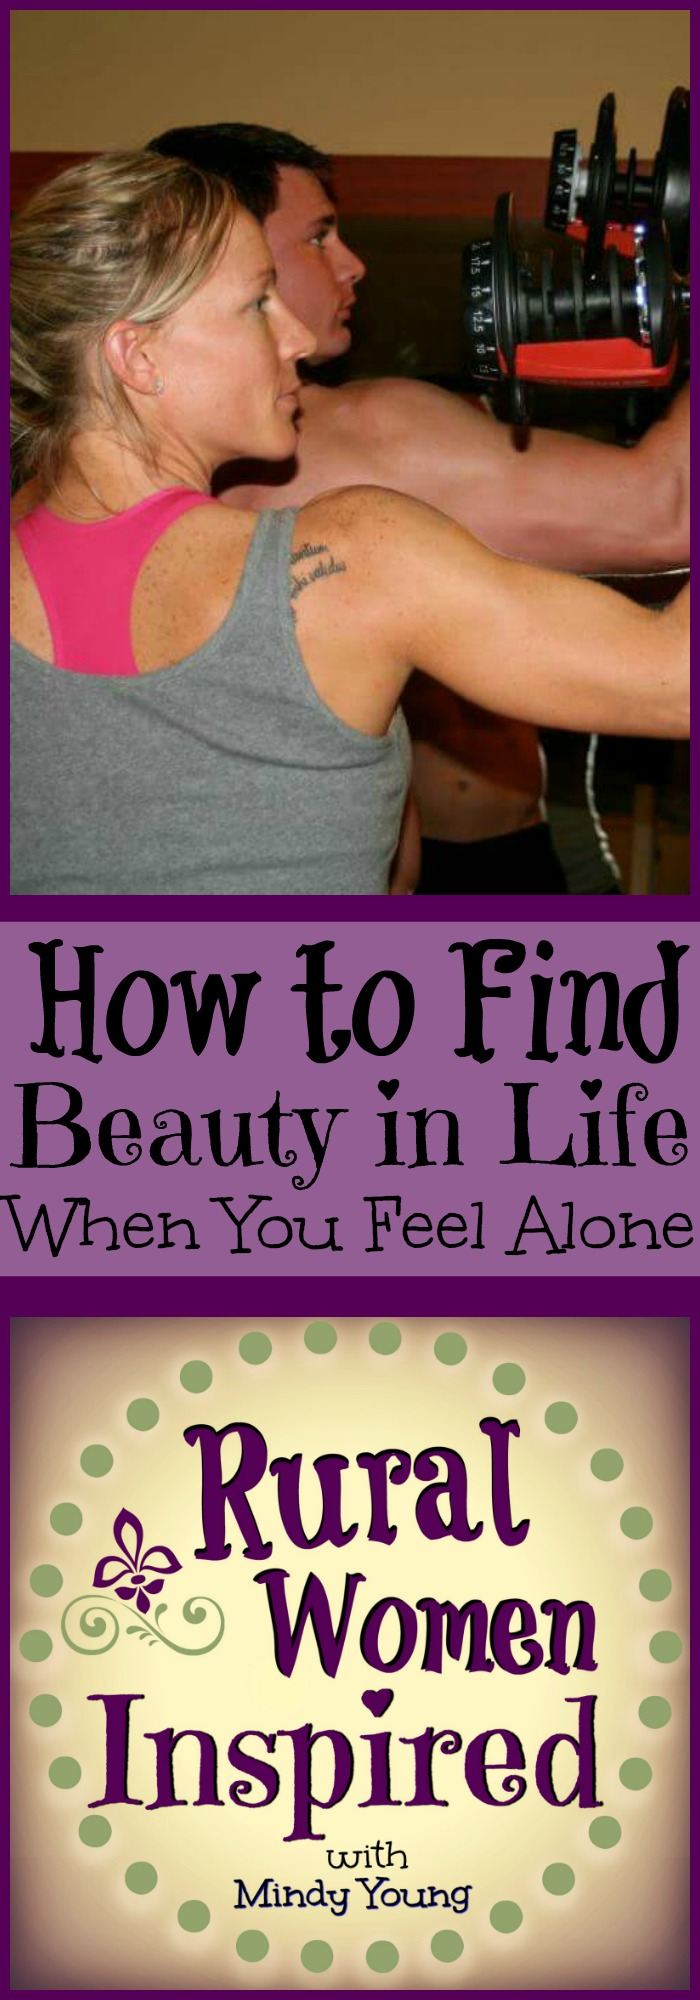 Do you struggle to find beauty in life? Let this inspirational story guide you. Episode 20.